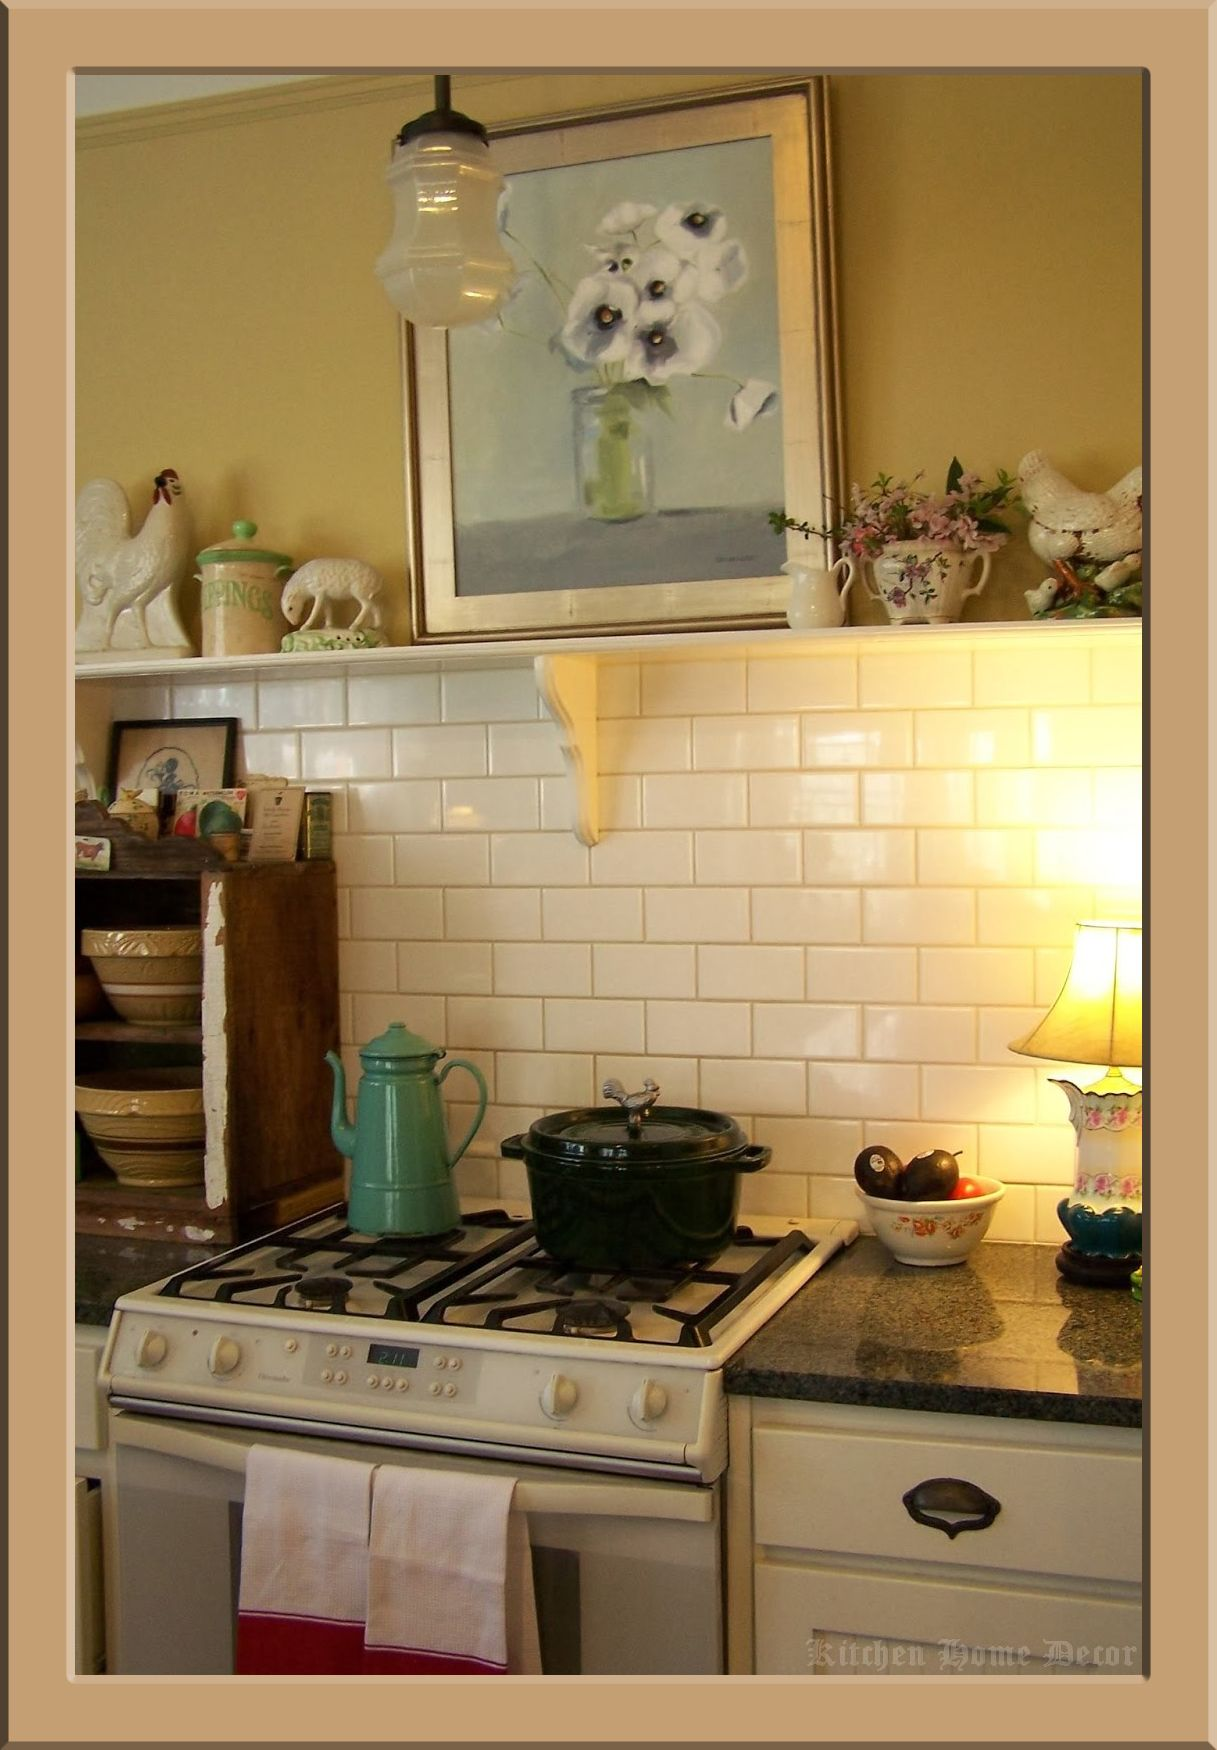 How Important is Kitchen Decor. 10 Expert Quotes